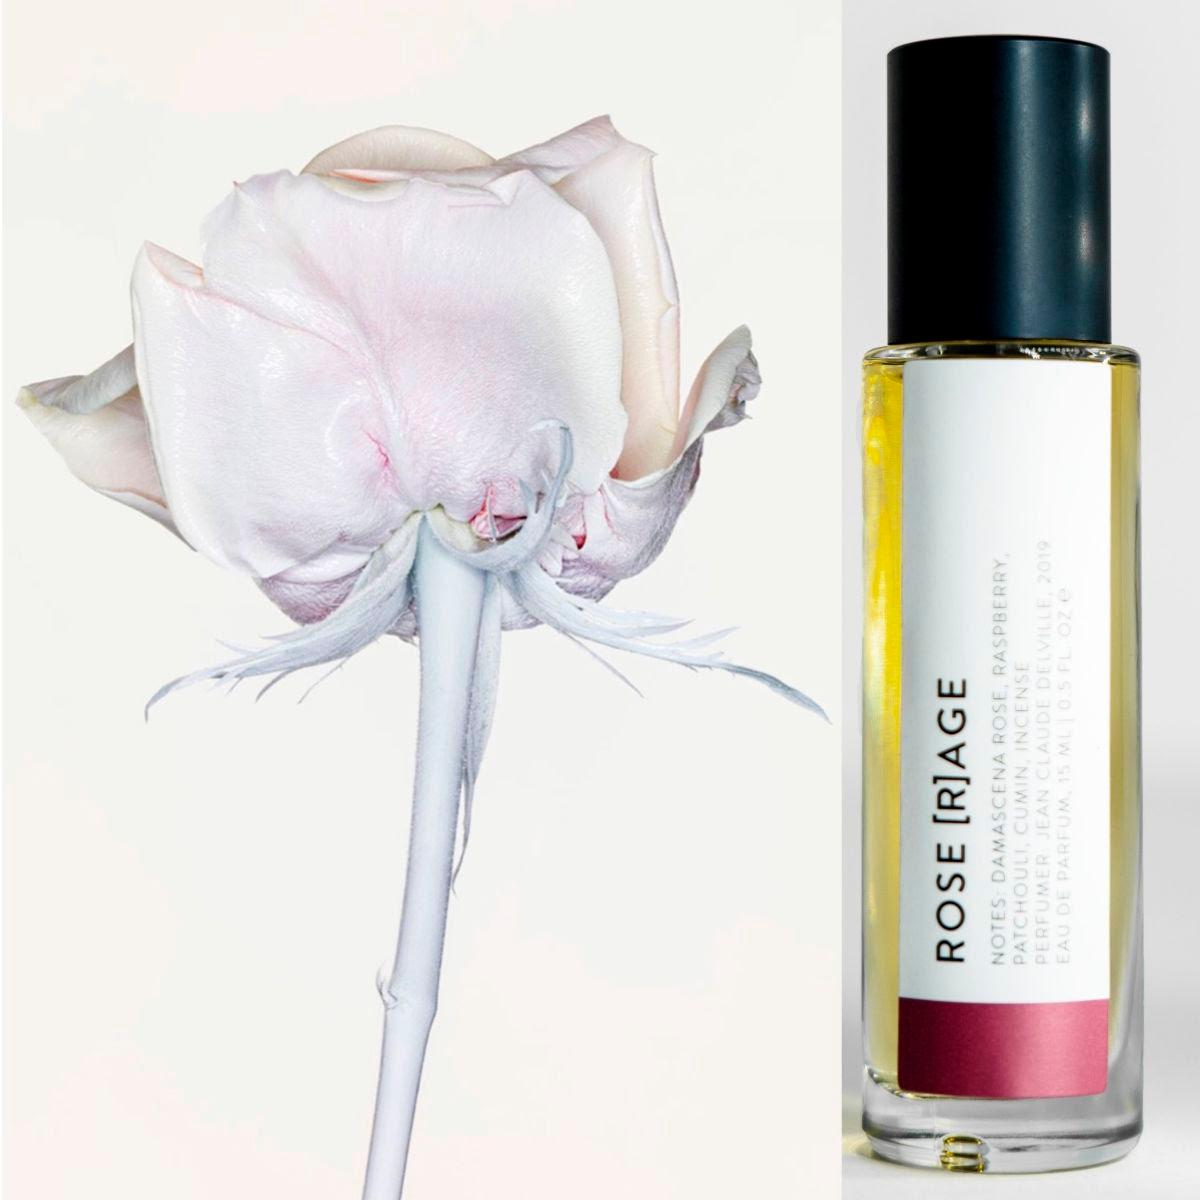 light pink rose with white stem by ben hasset, rose rage fragrance